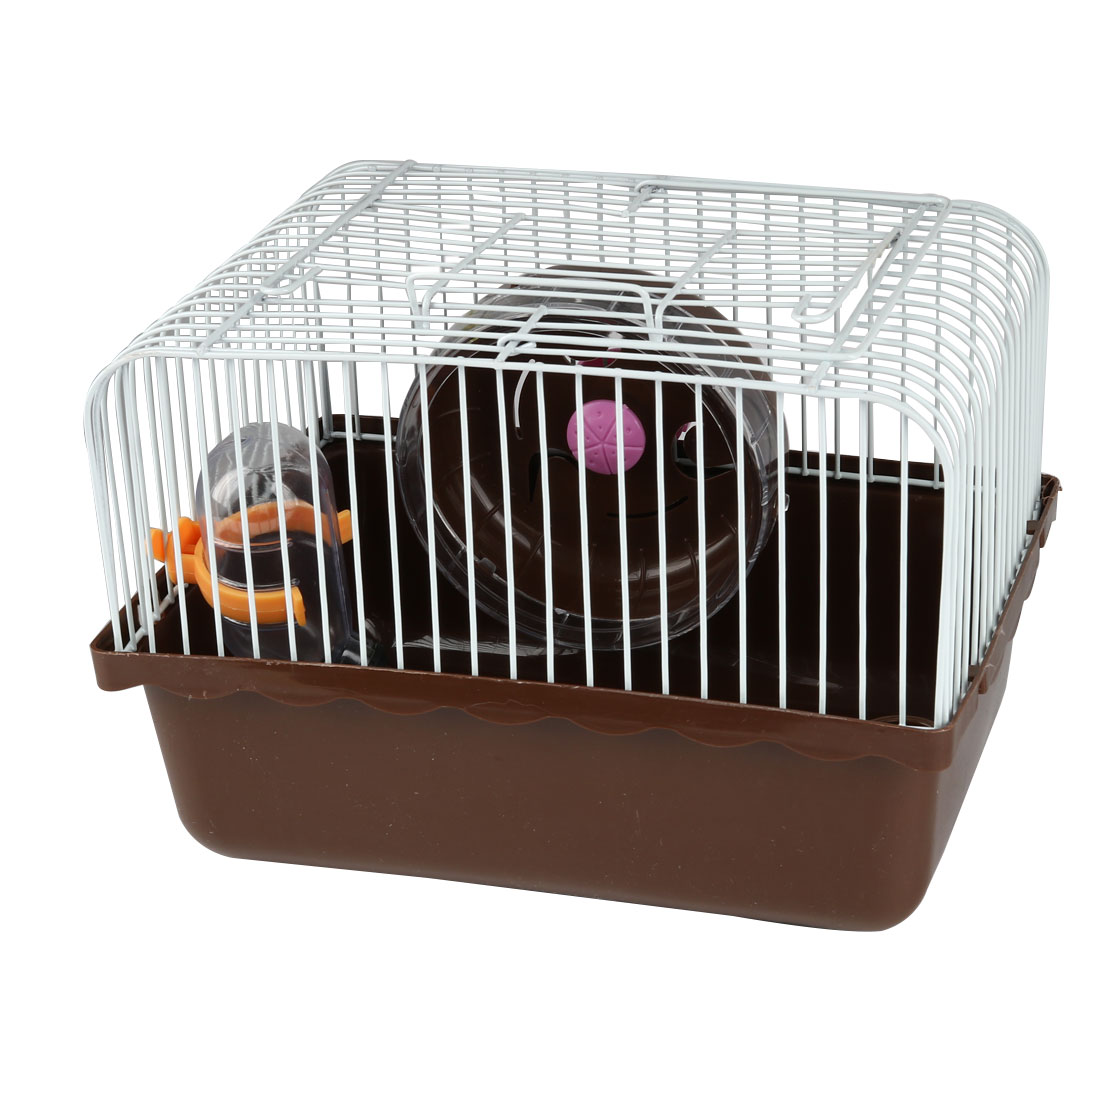 Plastic Rectangle Pet Squirrel Cat Bed House Holder Puppy Basket Carrier Brown